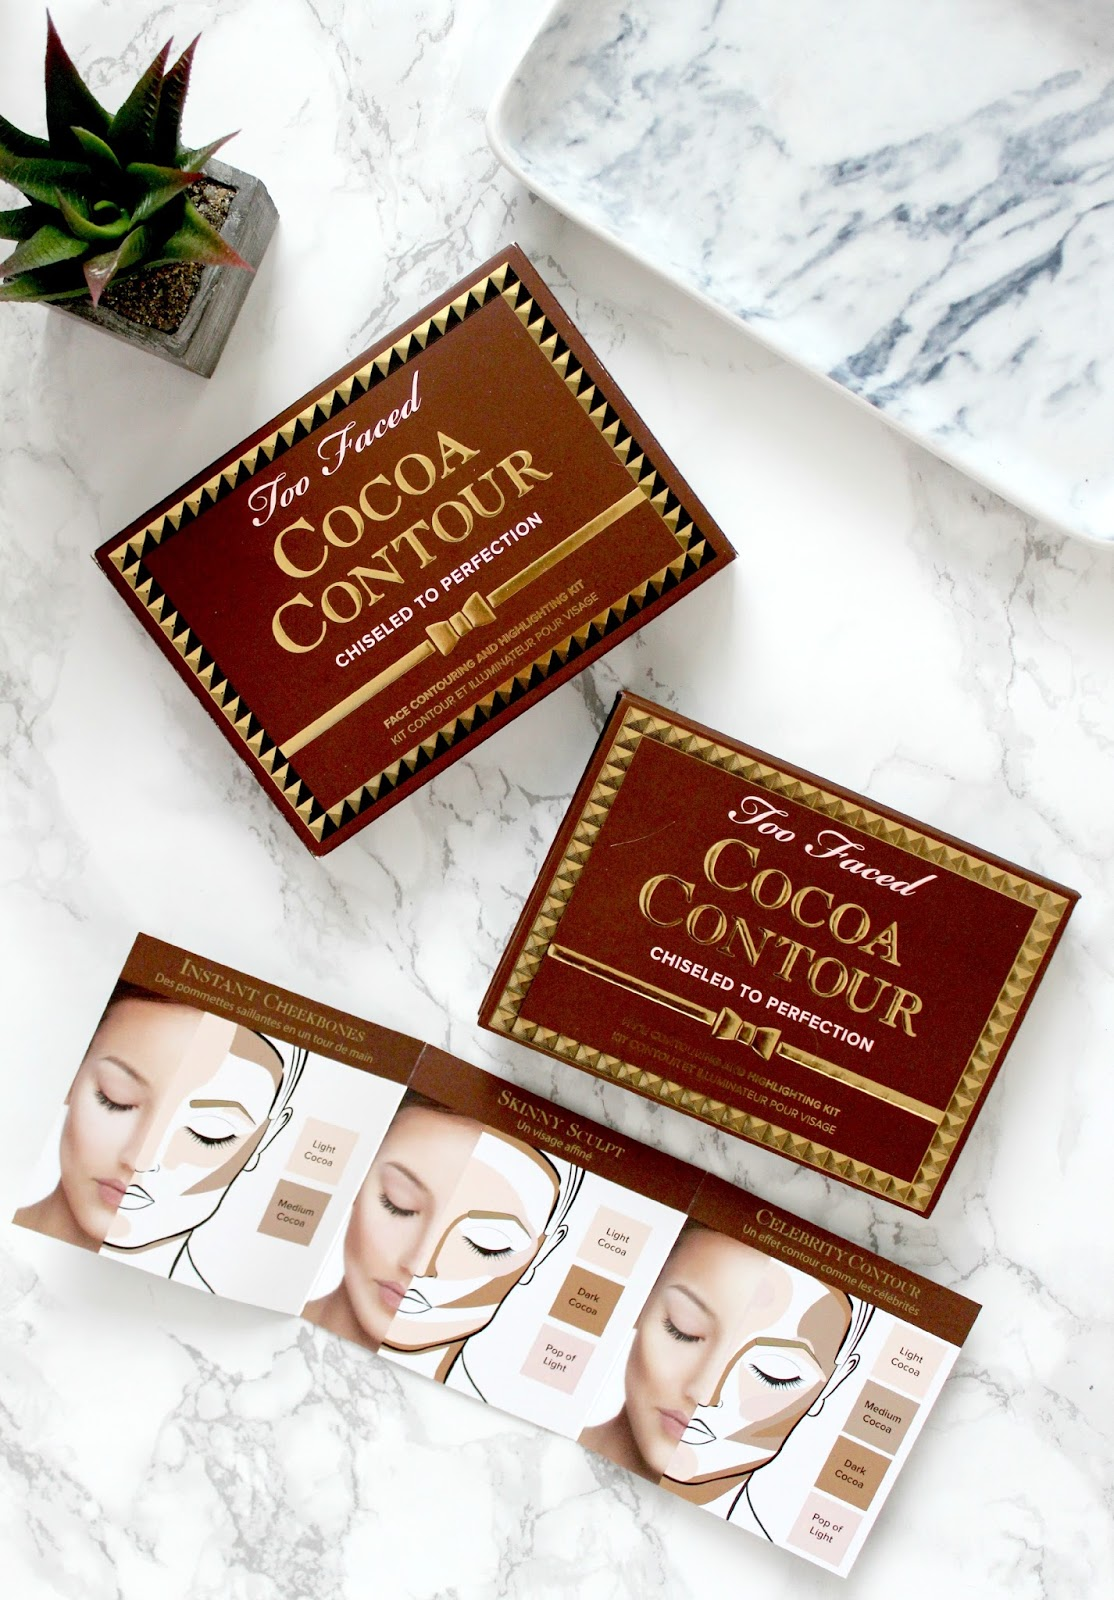 too faced cocoa contour palette review couture girl. Black Bedroom Furniture Sets. Home Design Ideas